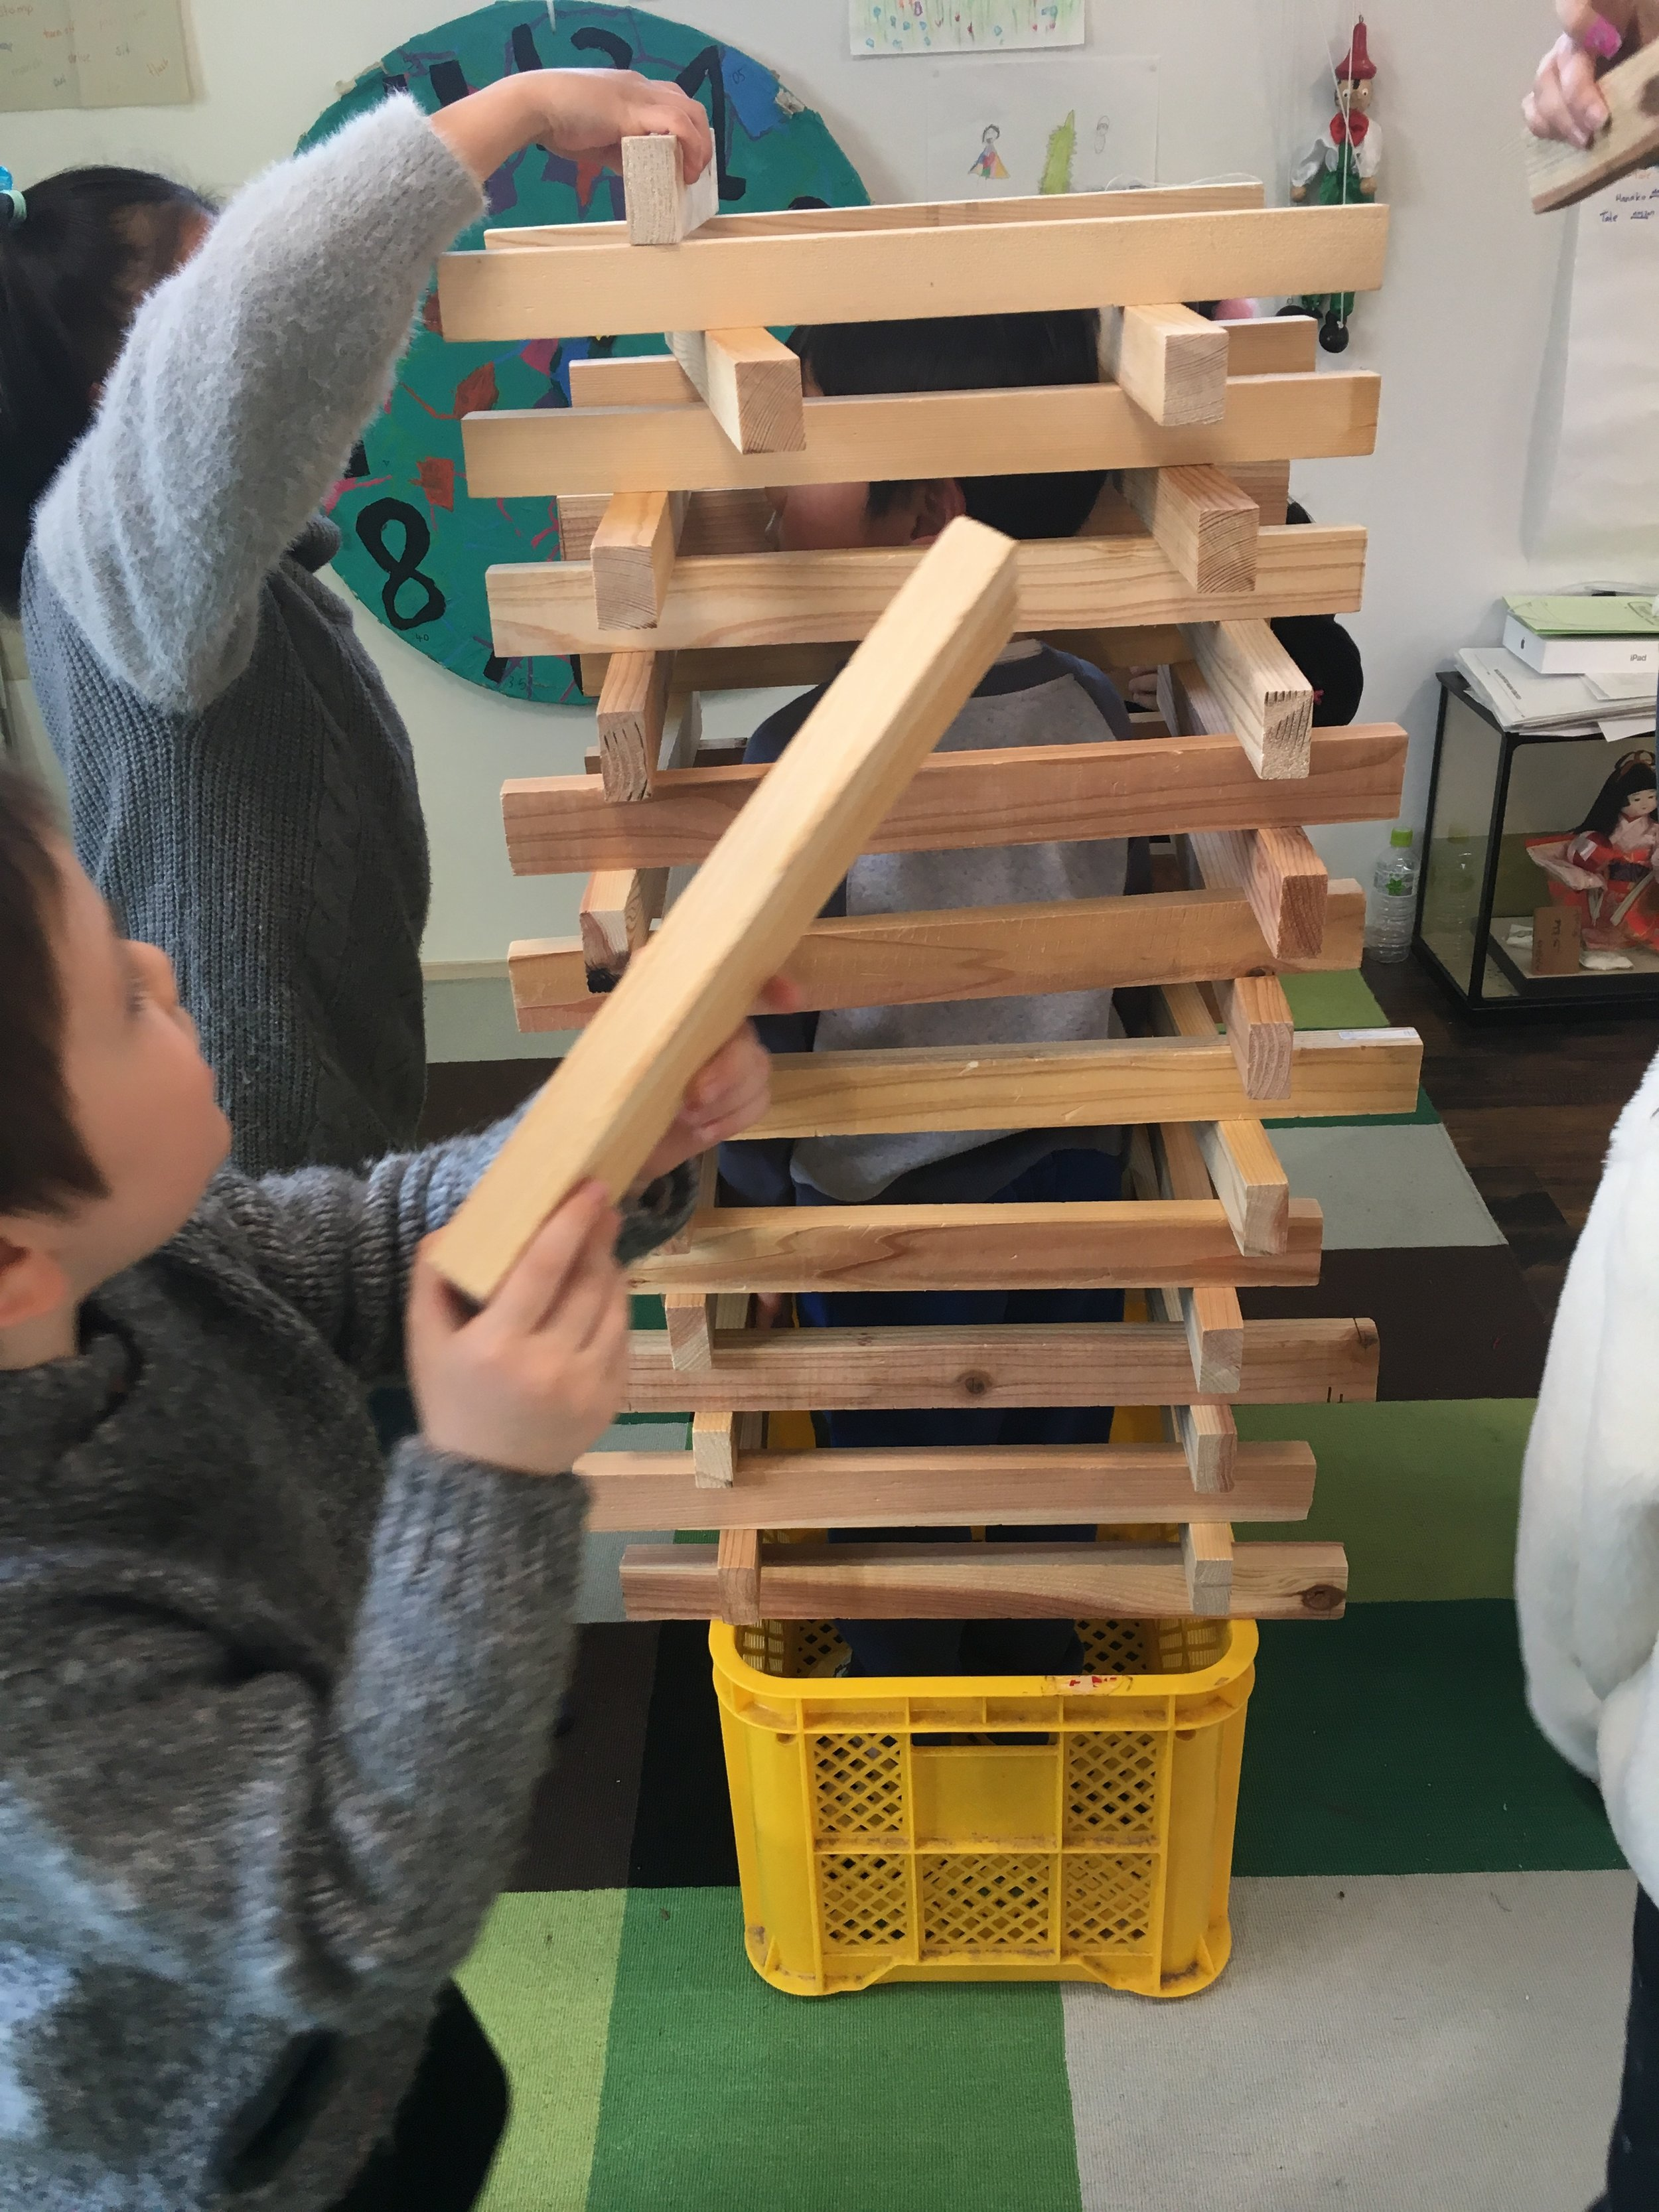 Some of the kids started building block towers....